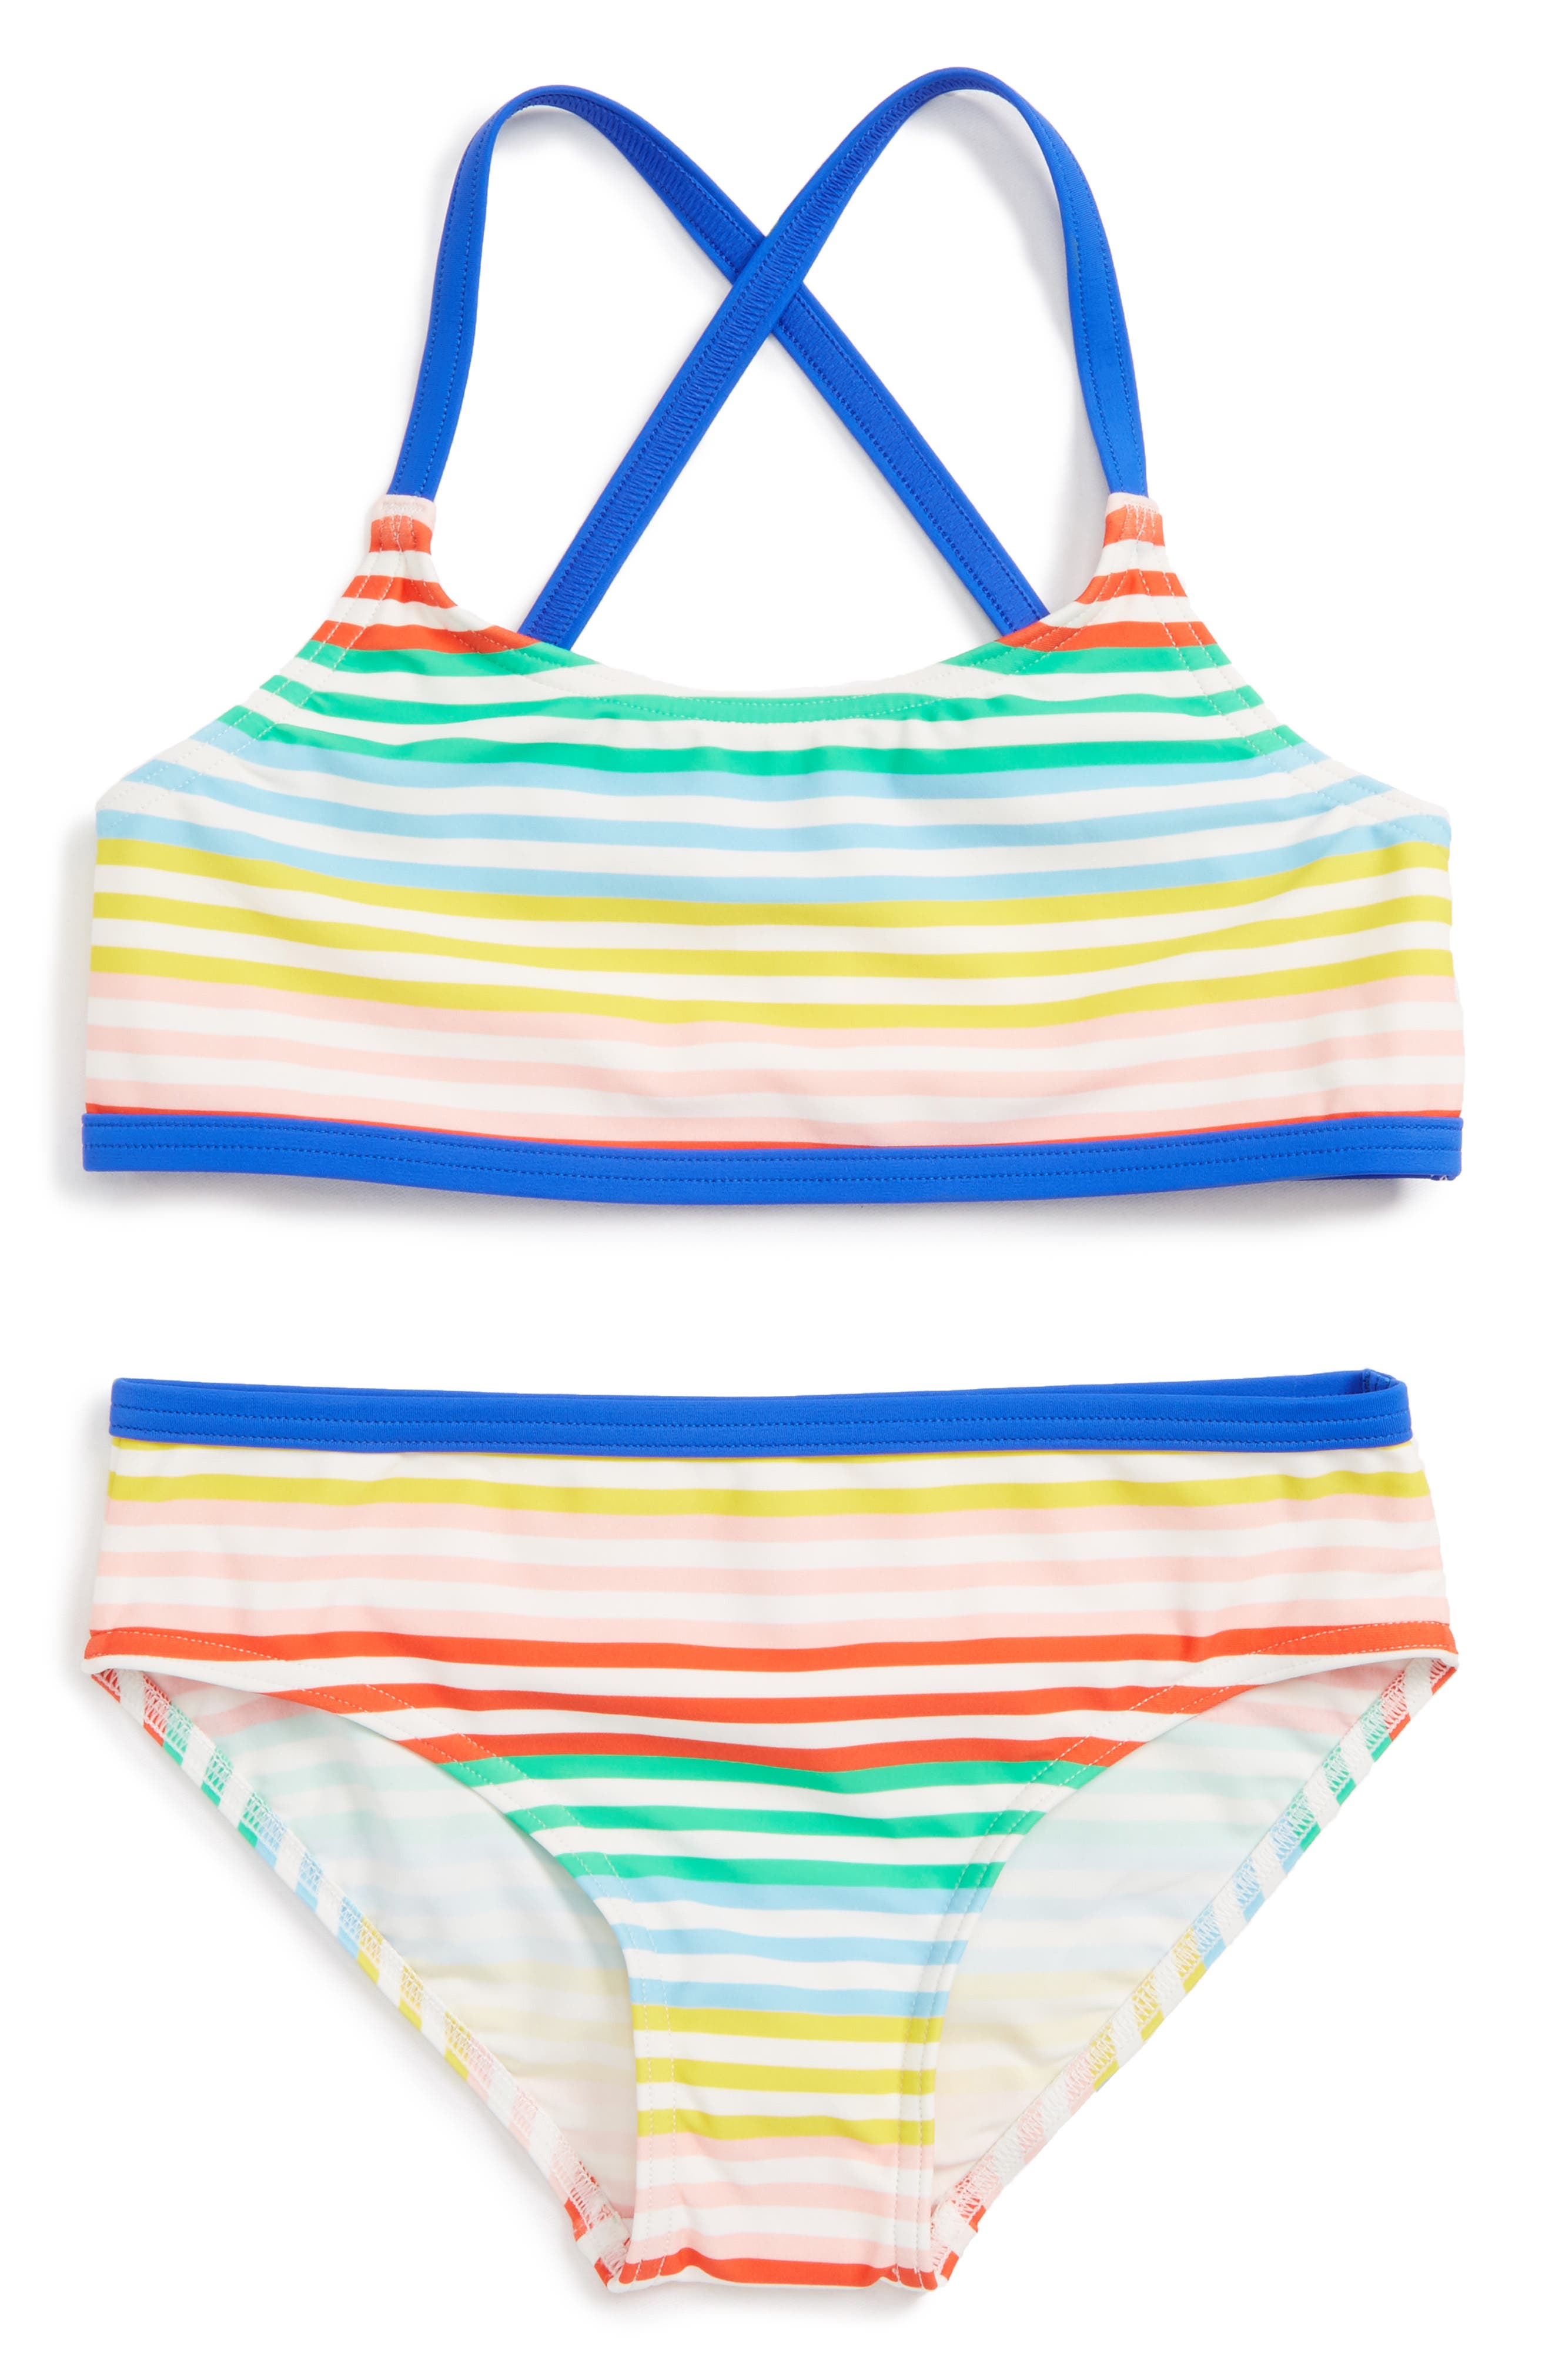 Into the Sea Two-Piece Swimsuit,                         Main,                         color, 406